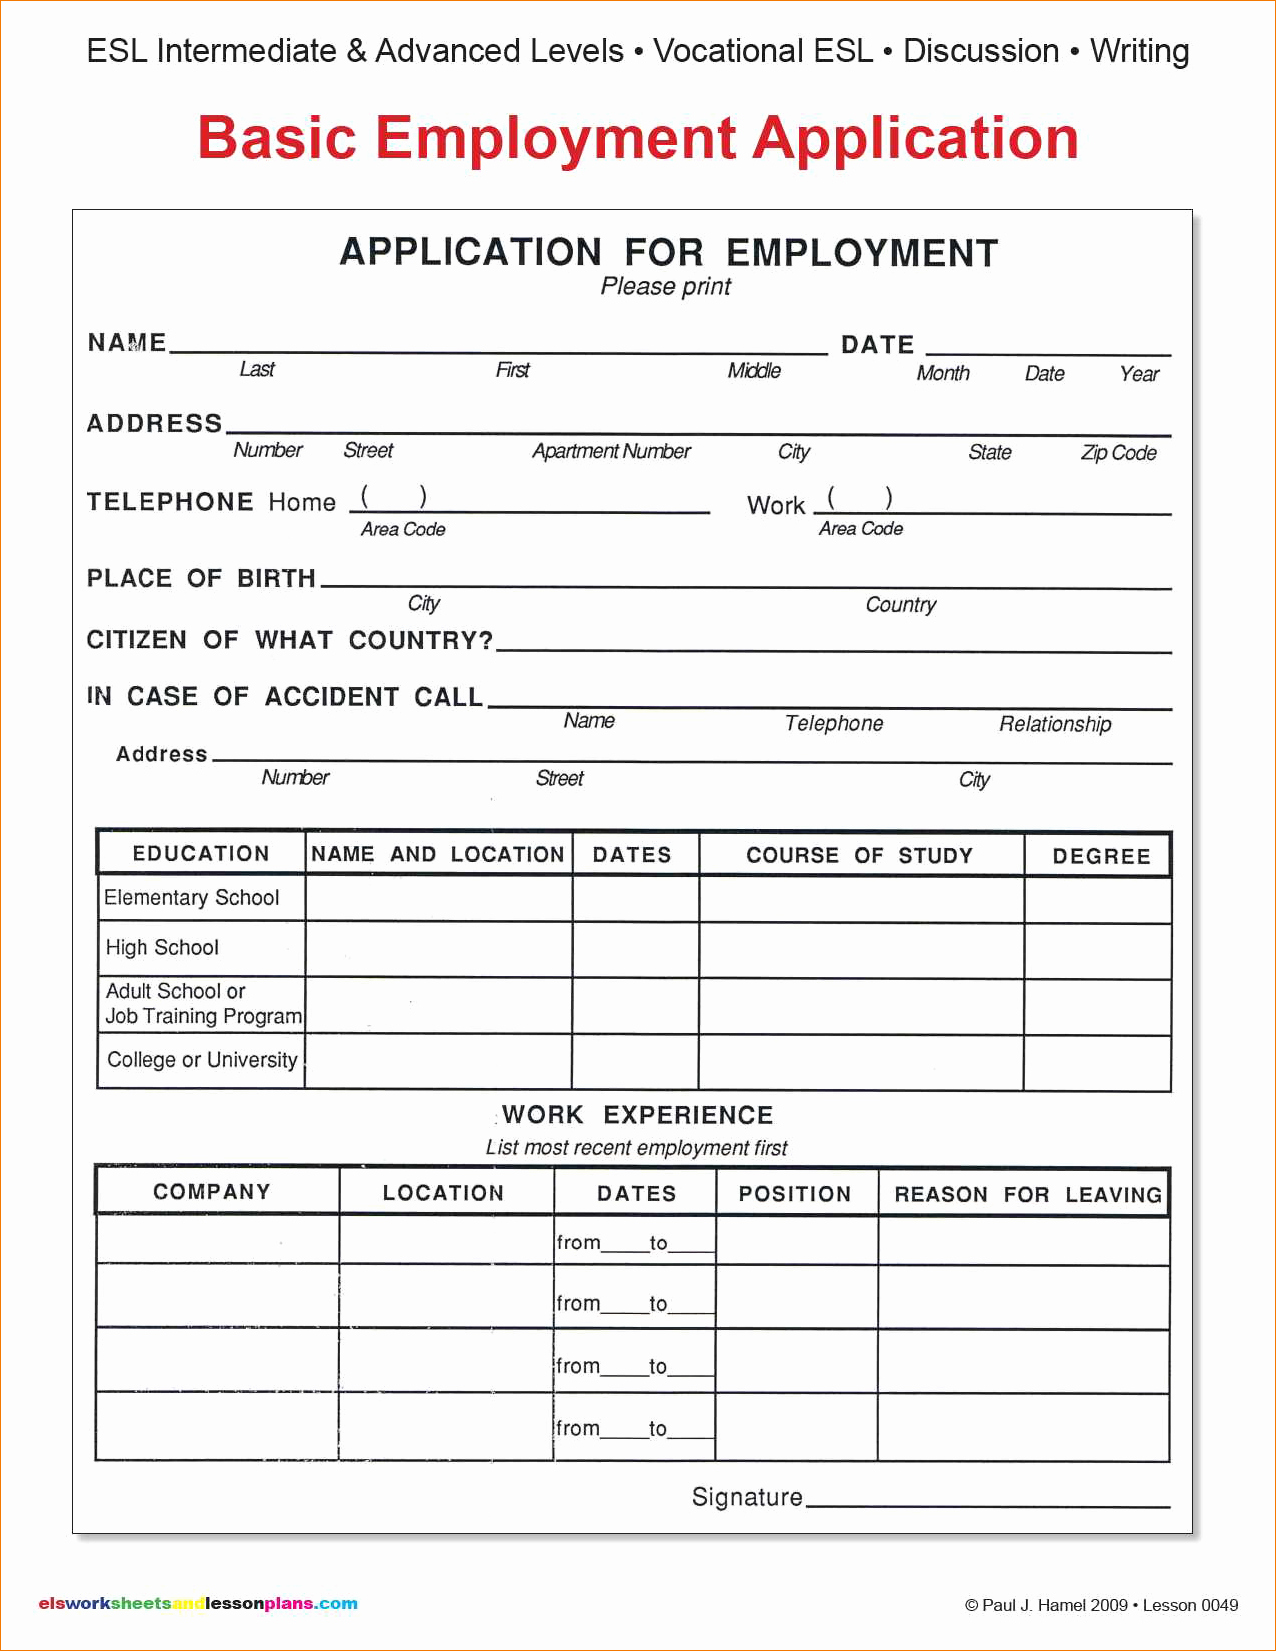 Employment Application forms Free Download Elegant 9 Basic Application for Employmentagenda Template Sample